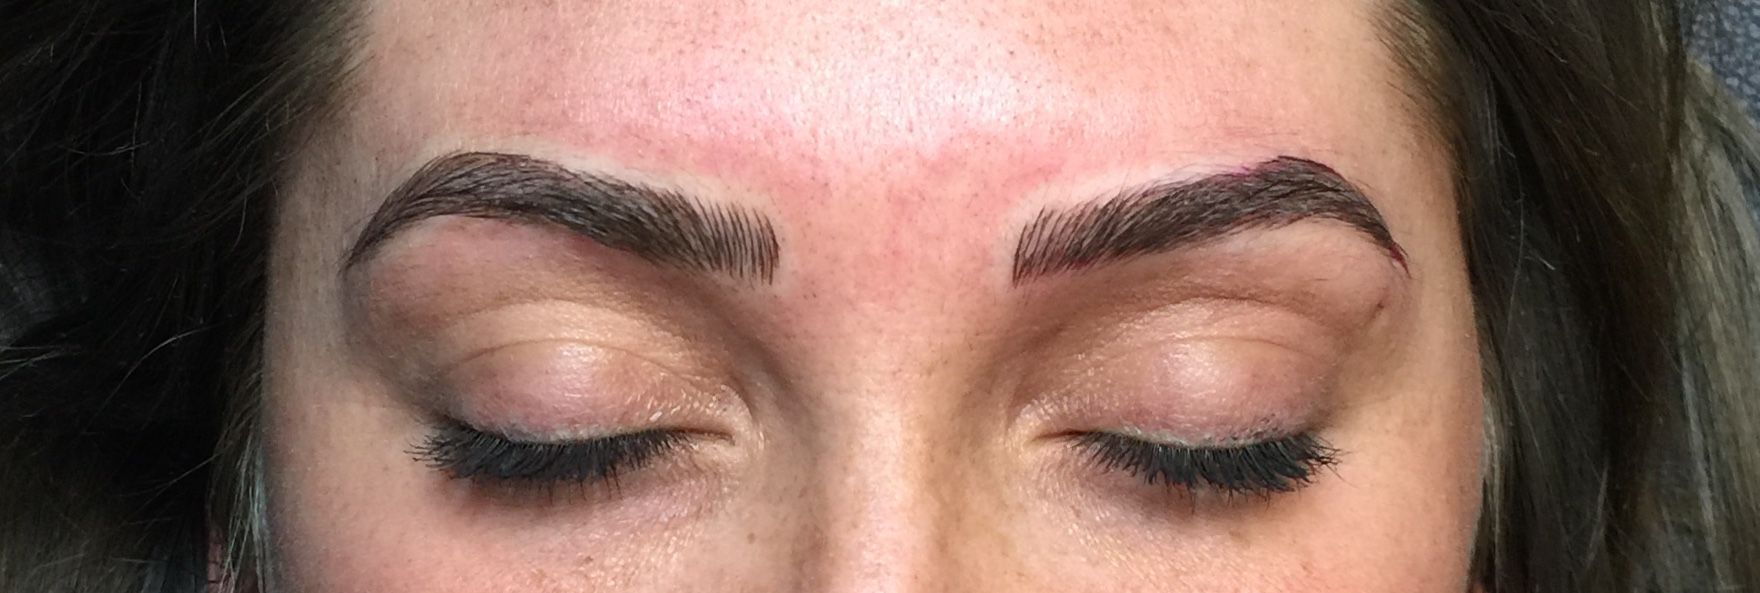 Microblading Eyebrow Permanent Makeup Eyebrow Color Correction And